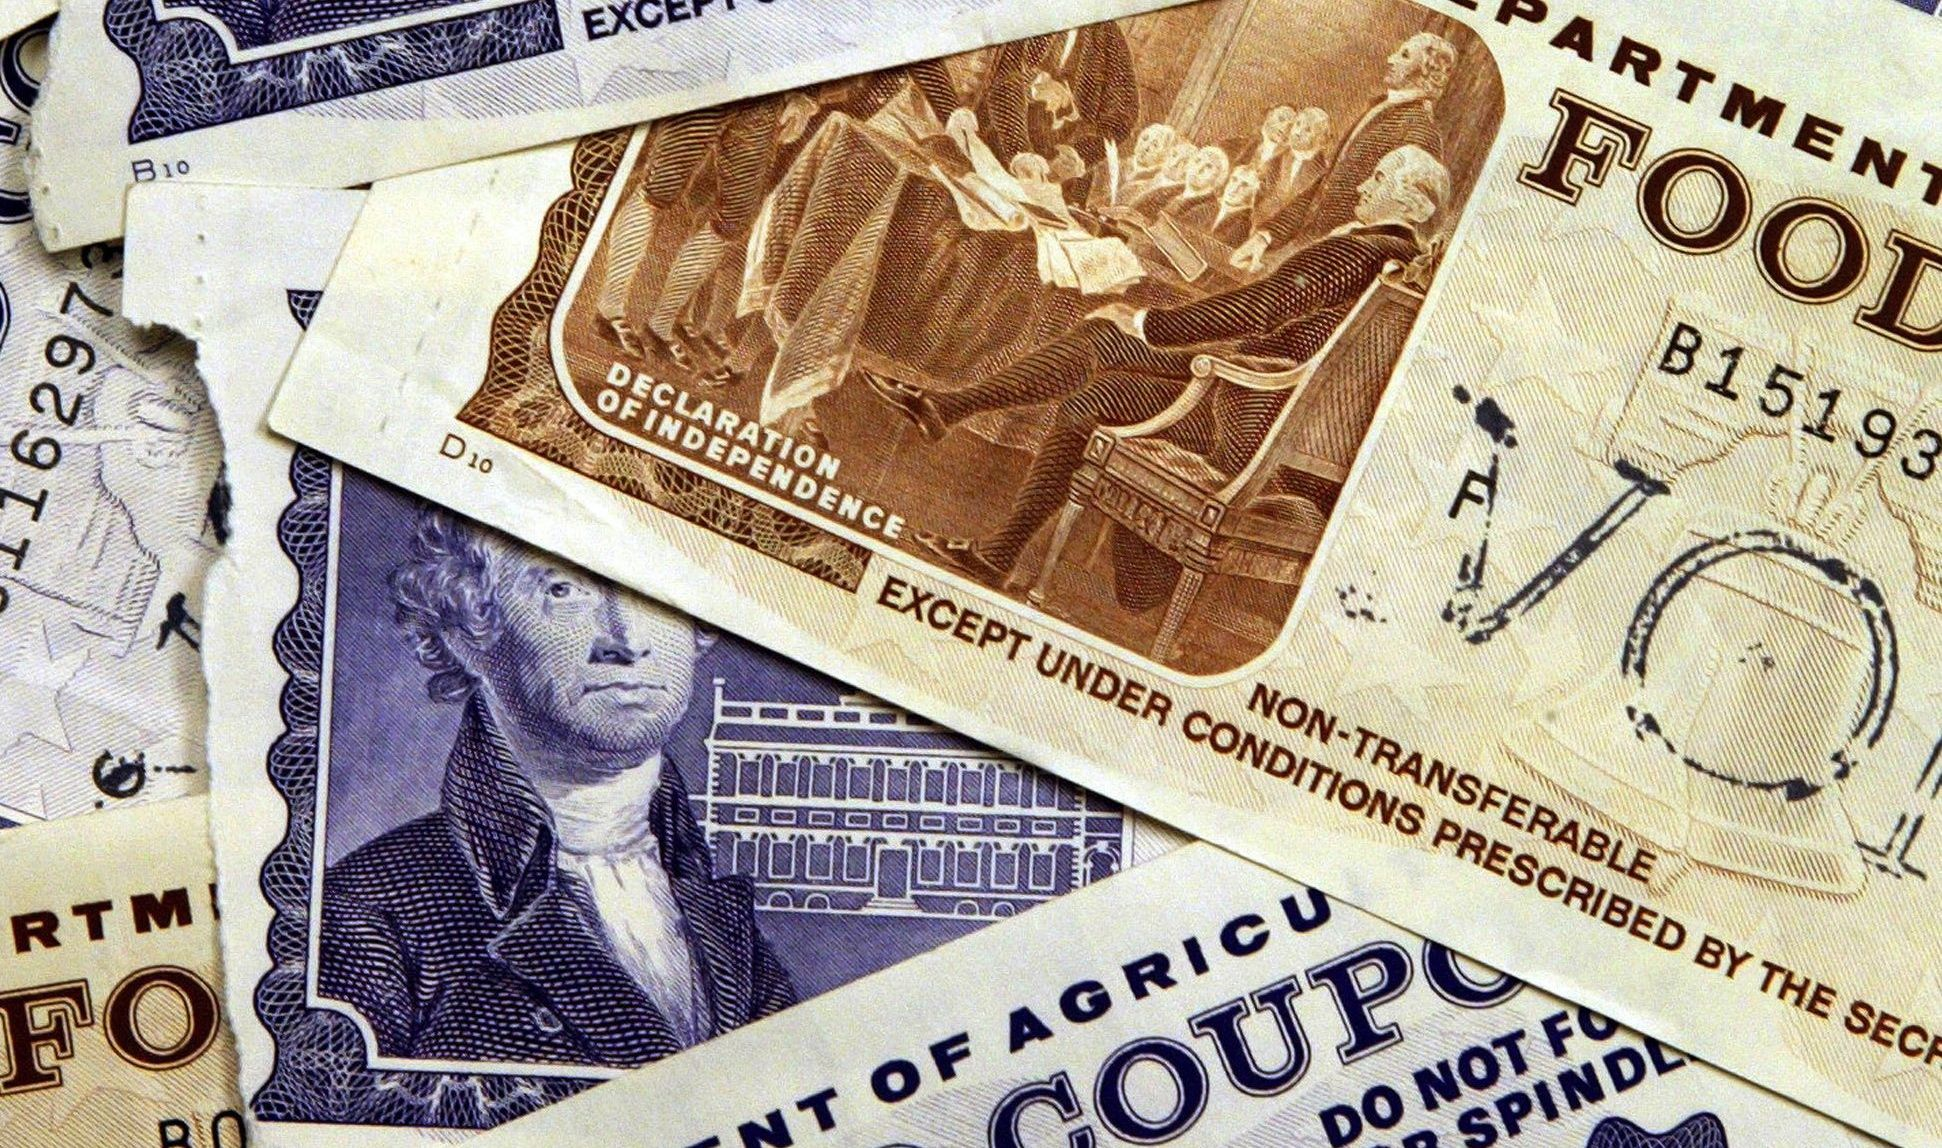 food stamp Food stamp definition, any of the coupons sold or given under a federal program to eligible needy persons and redeemable for food at designated grocery stores or markets.